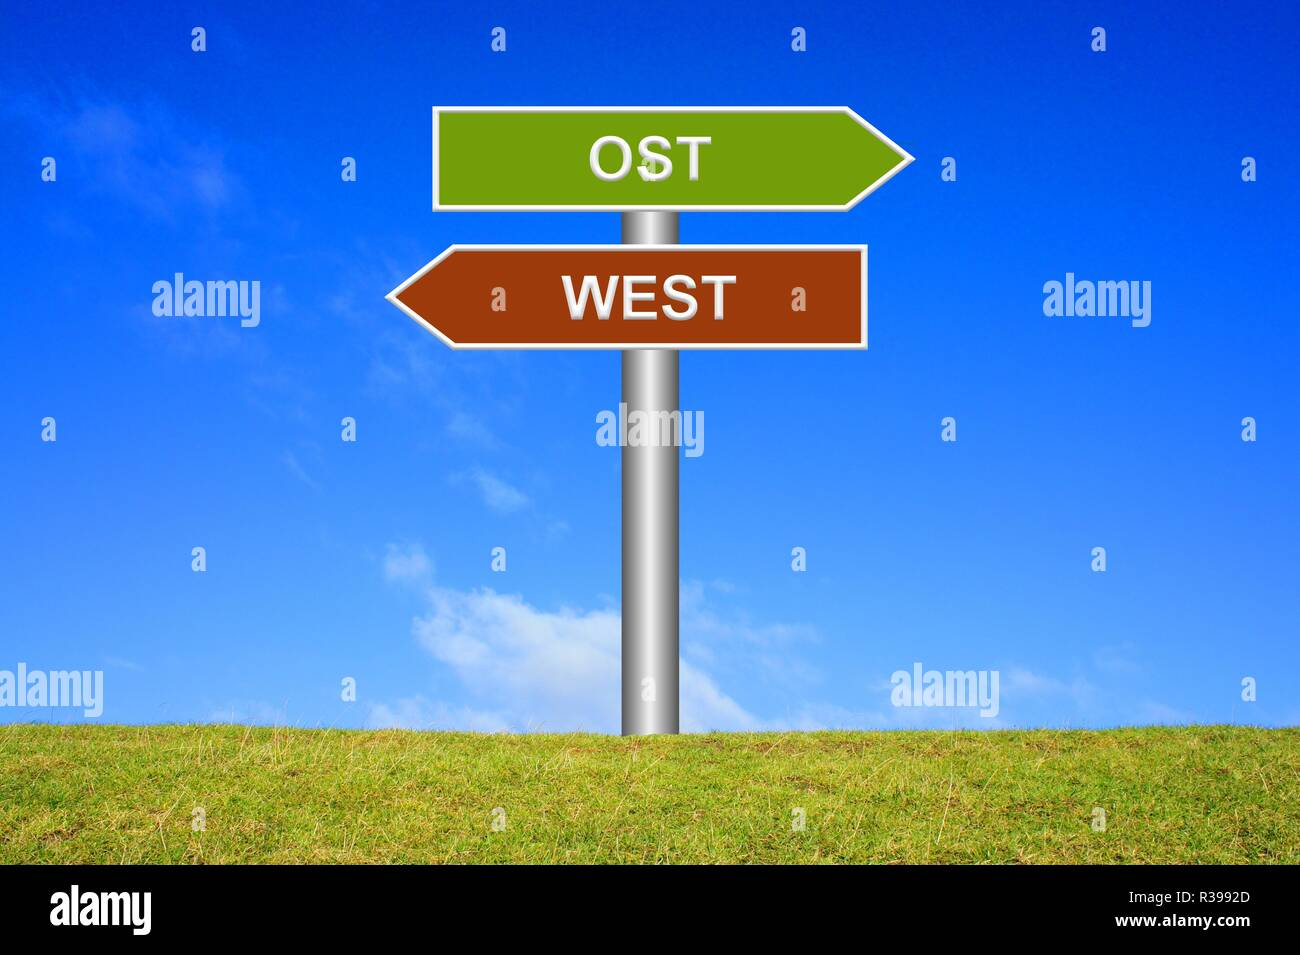 shield directions: east / west - Stock Image